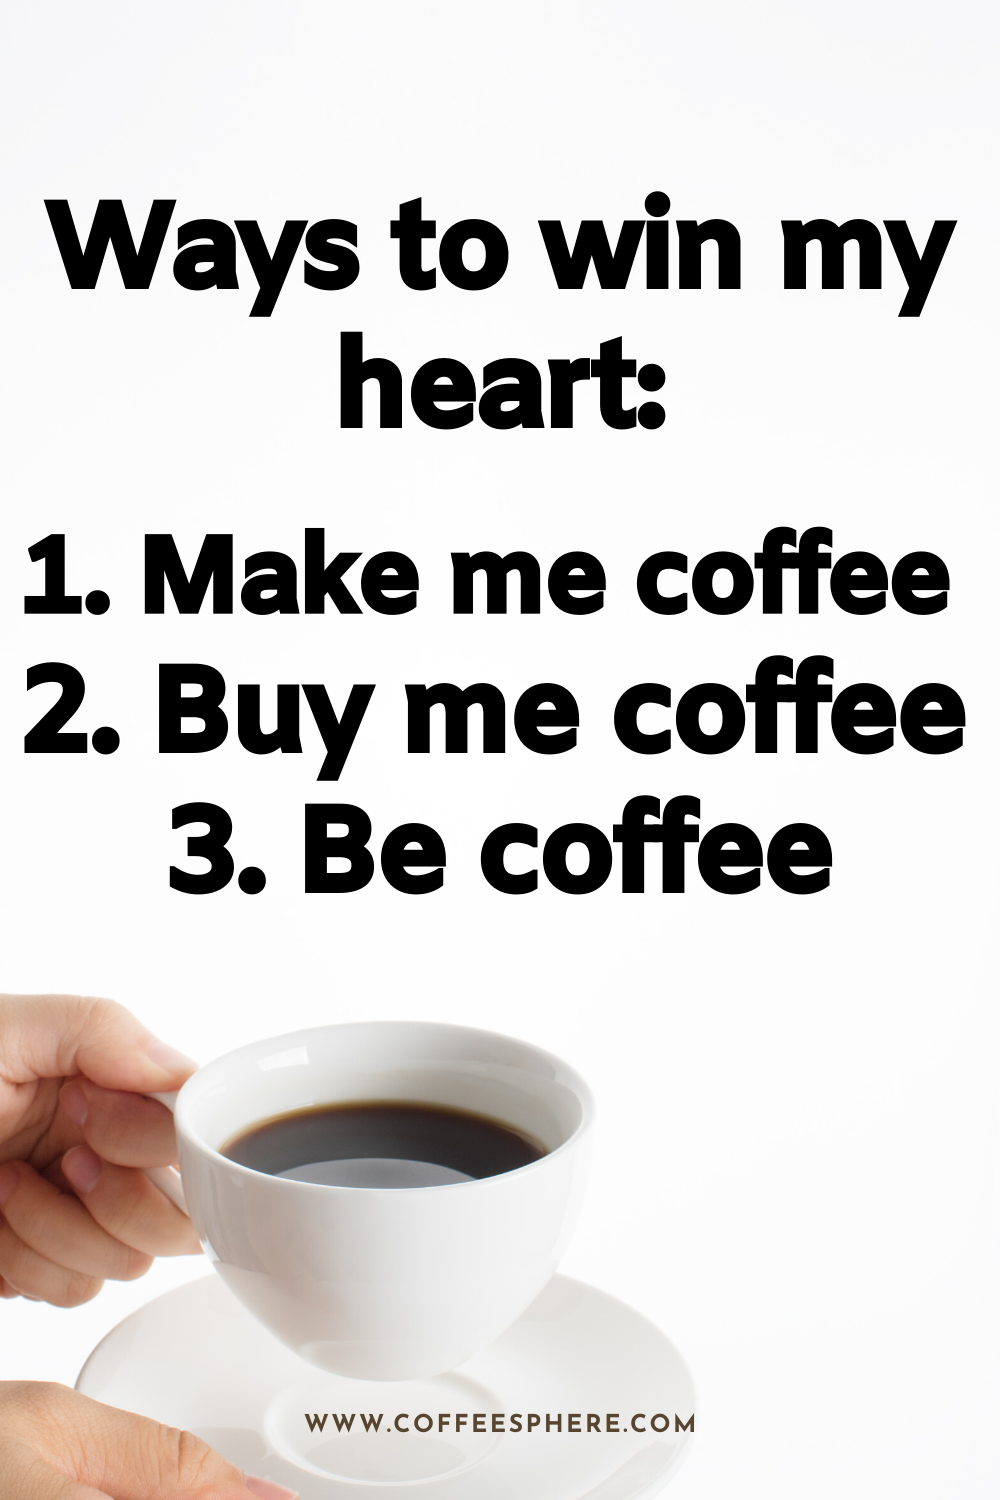 25 Coffee Quotes Funny Coffee Quotes That Will Brighten Your Mood Coffeesphere Funny Coffee Quotes Coffee Humor Coffee Quotes